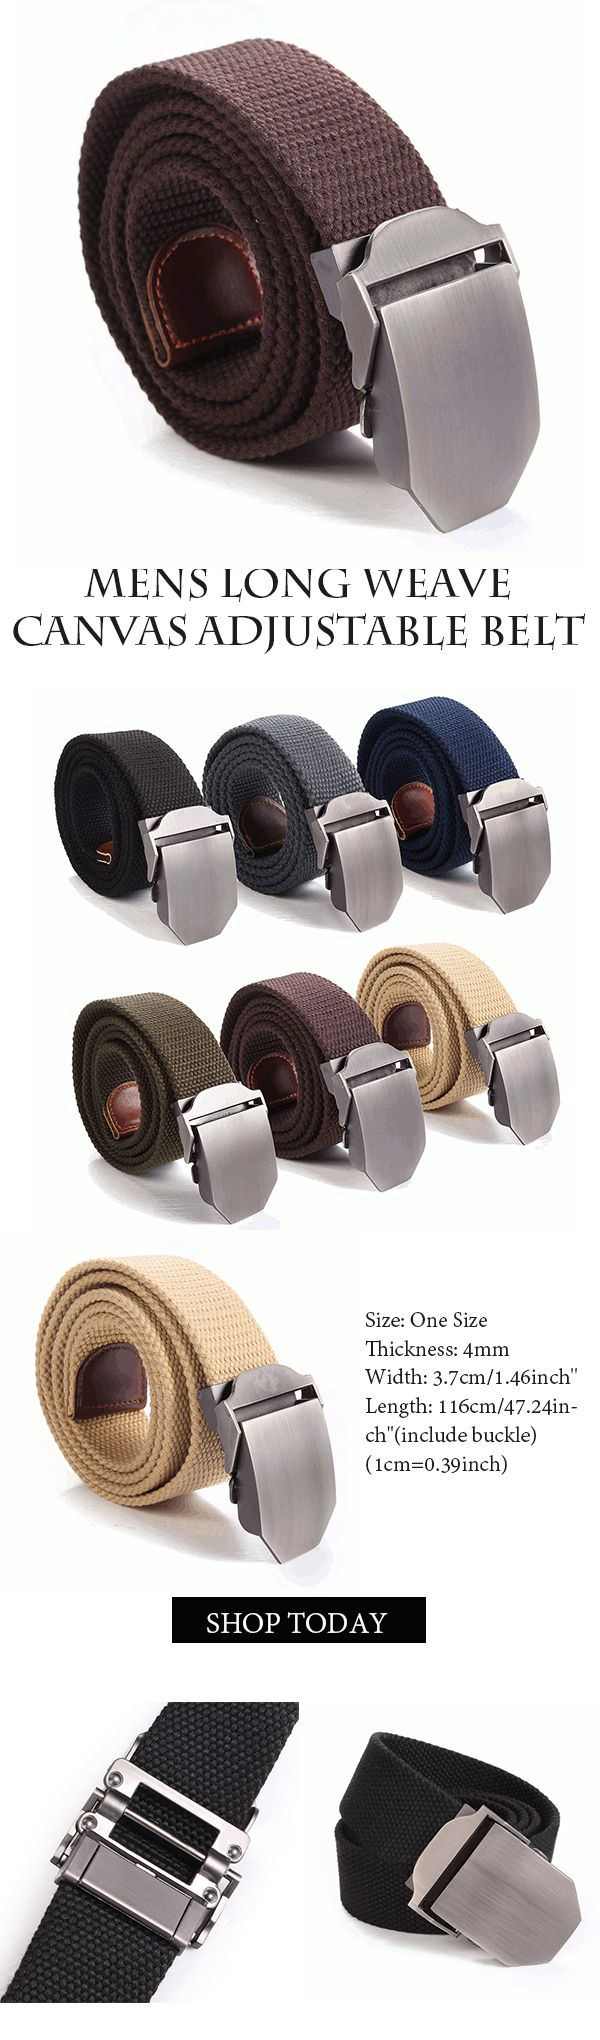 Mens Long Weave Canvas Web Buckle Belt #outfits #mensfahion #outdoors